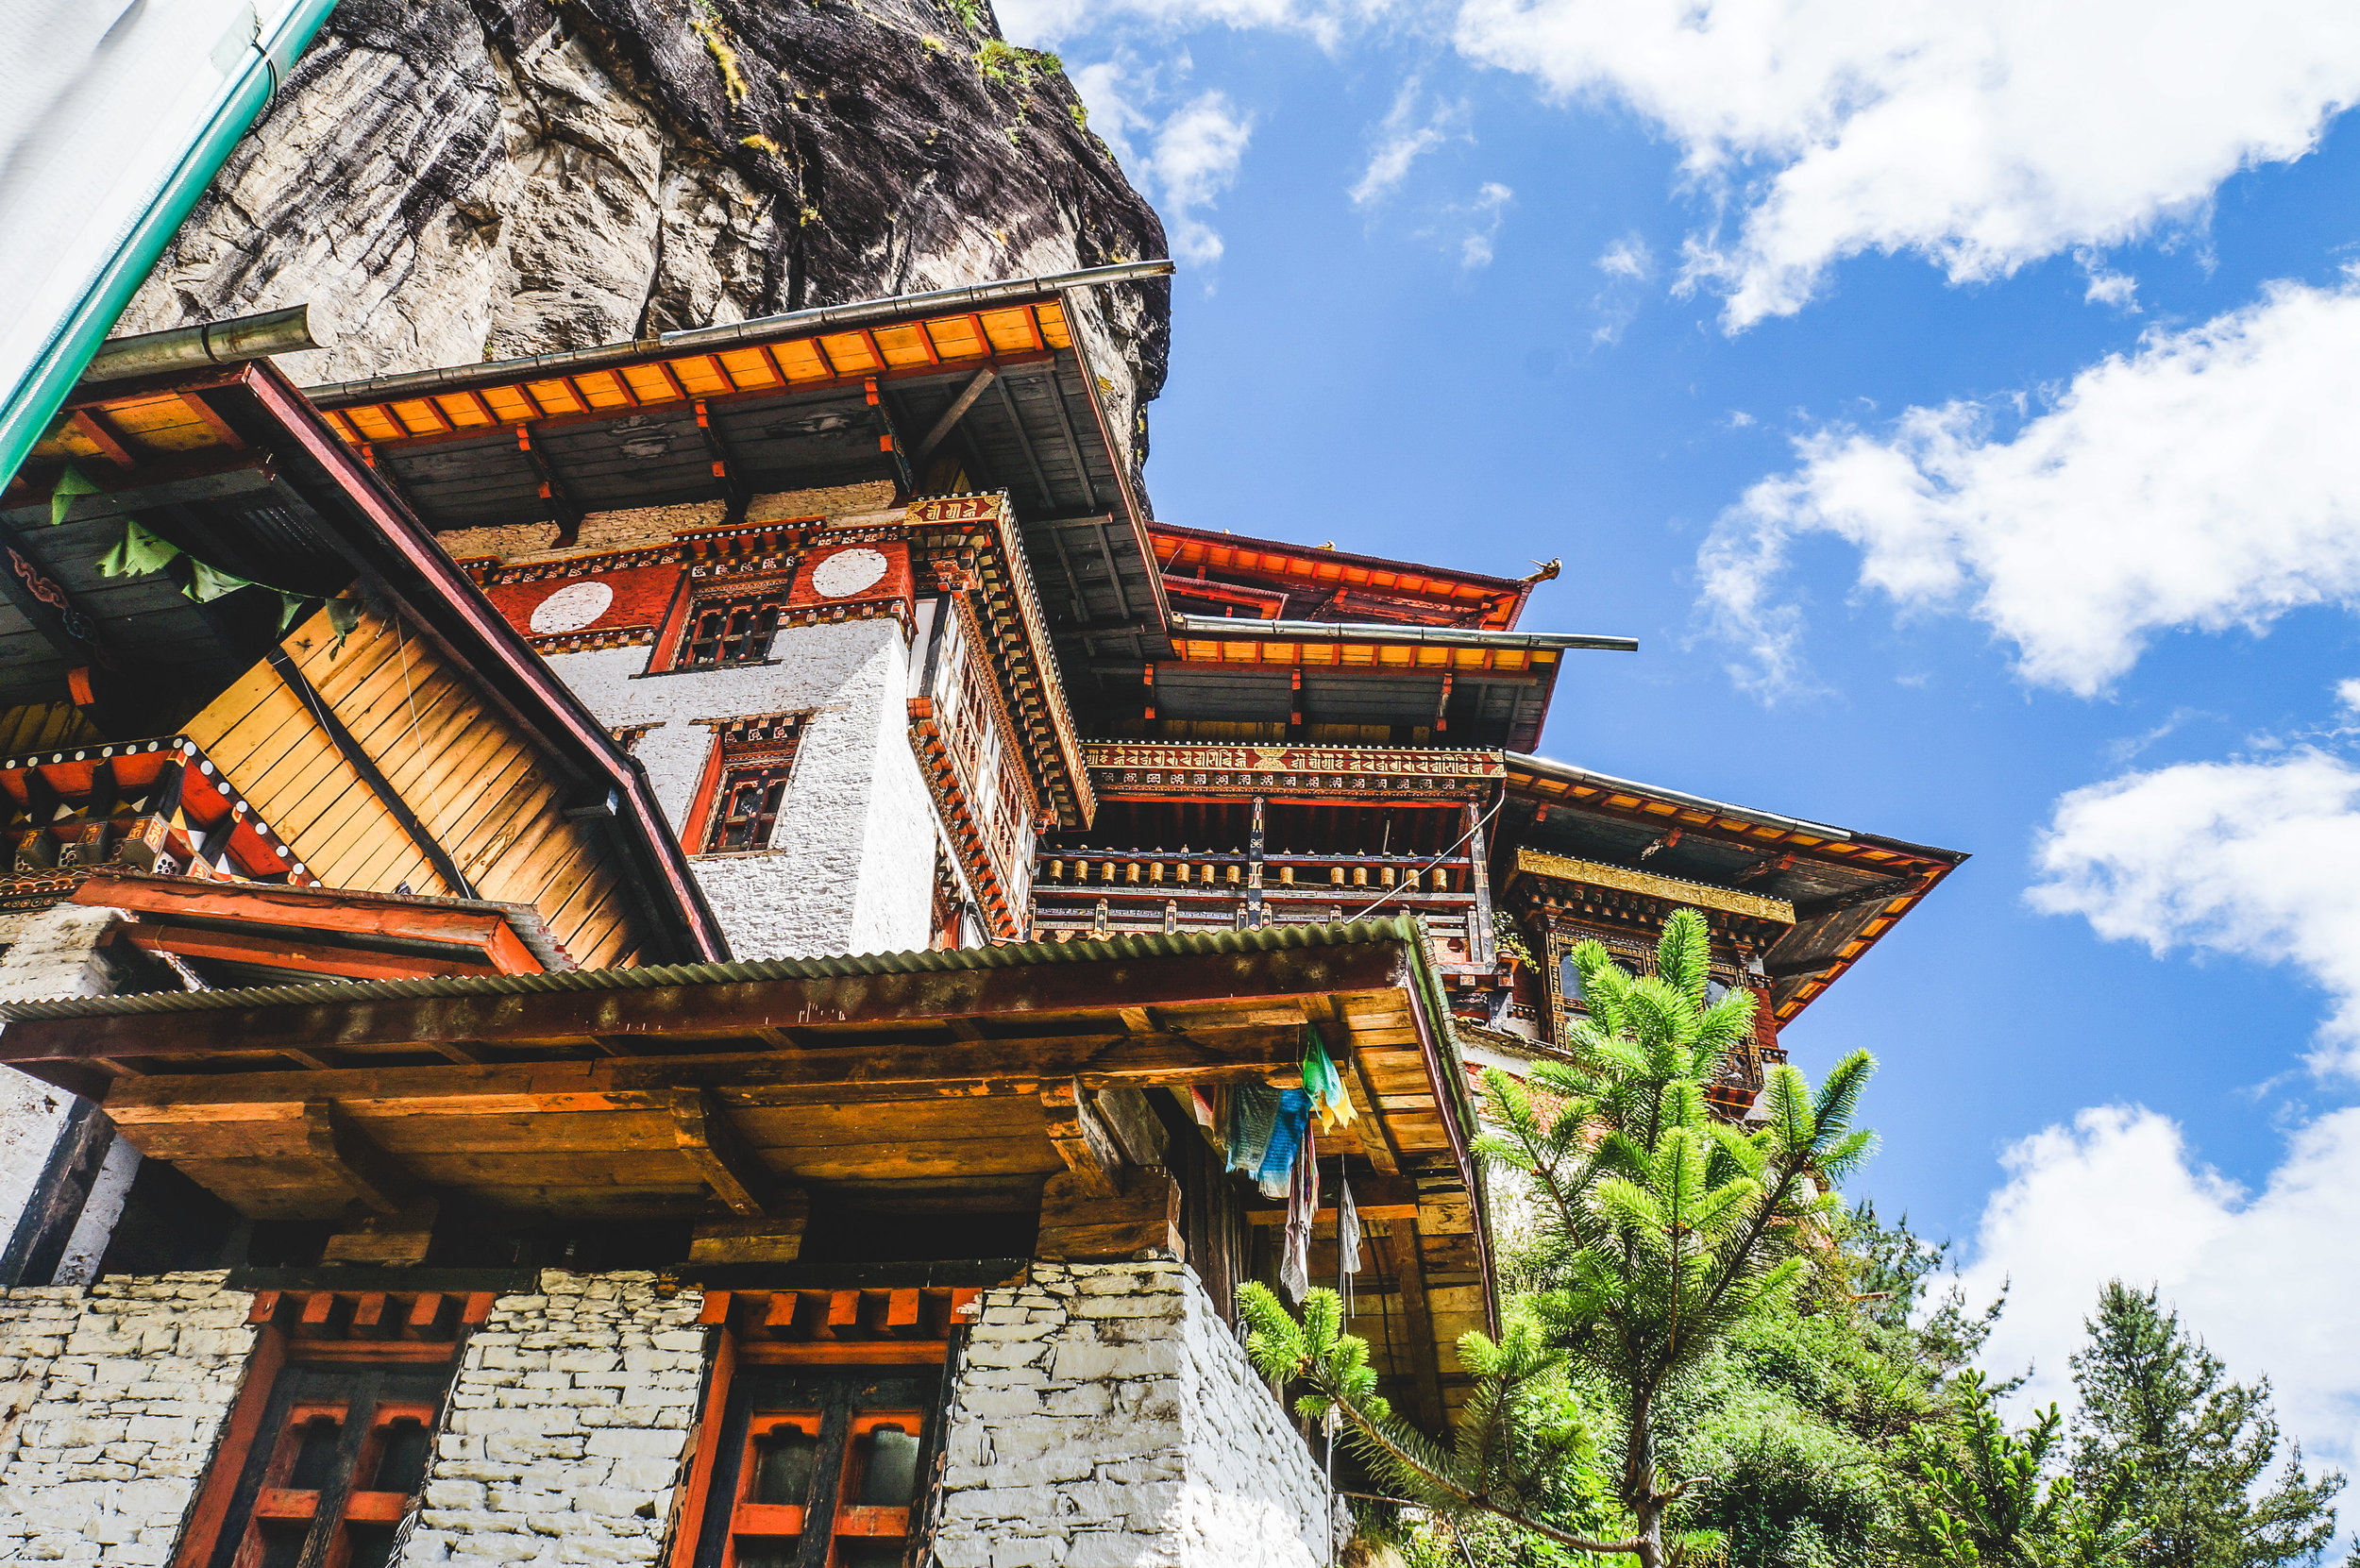 The Tiger's Nest or Paro Taktsang's main structures were rebuilt after a fire all but destroyed the complex 16 years ago. A consortium of international donors restored the site to its former glory in 2005